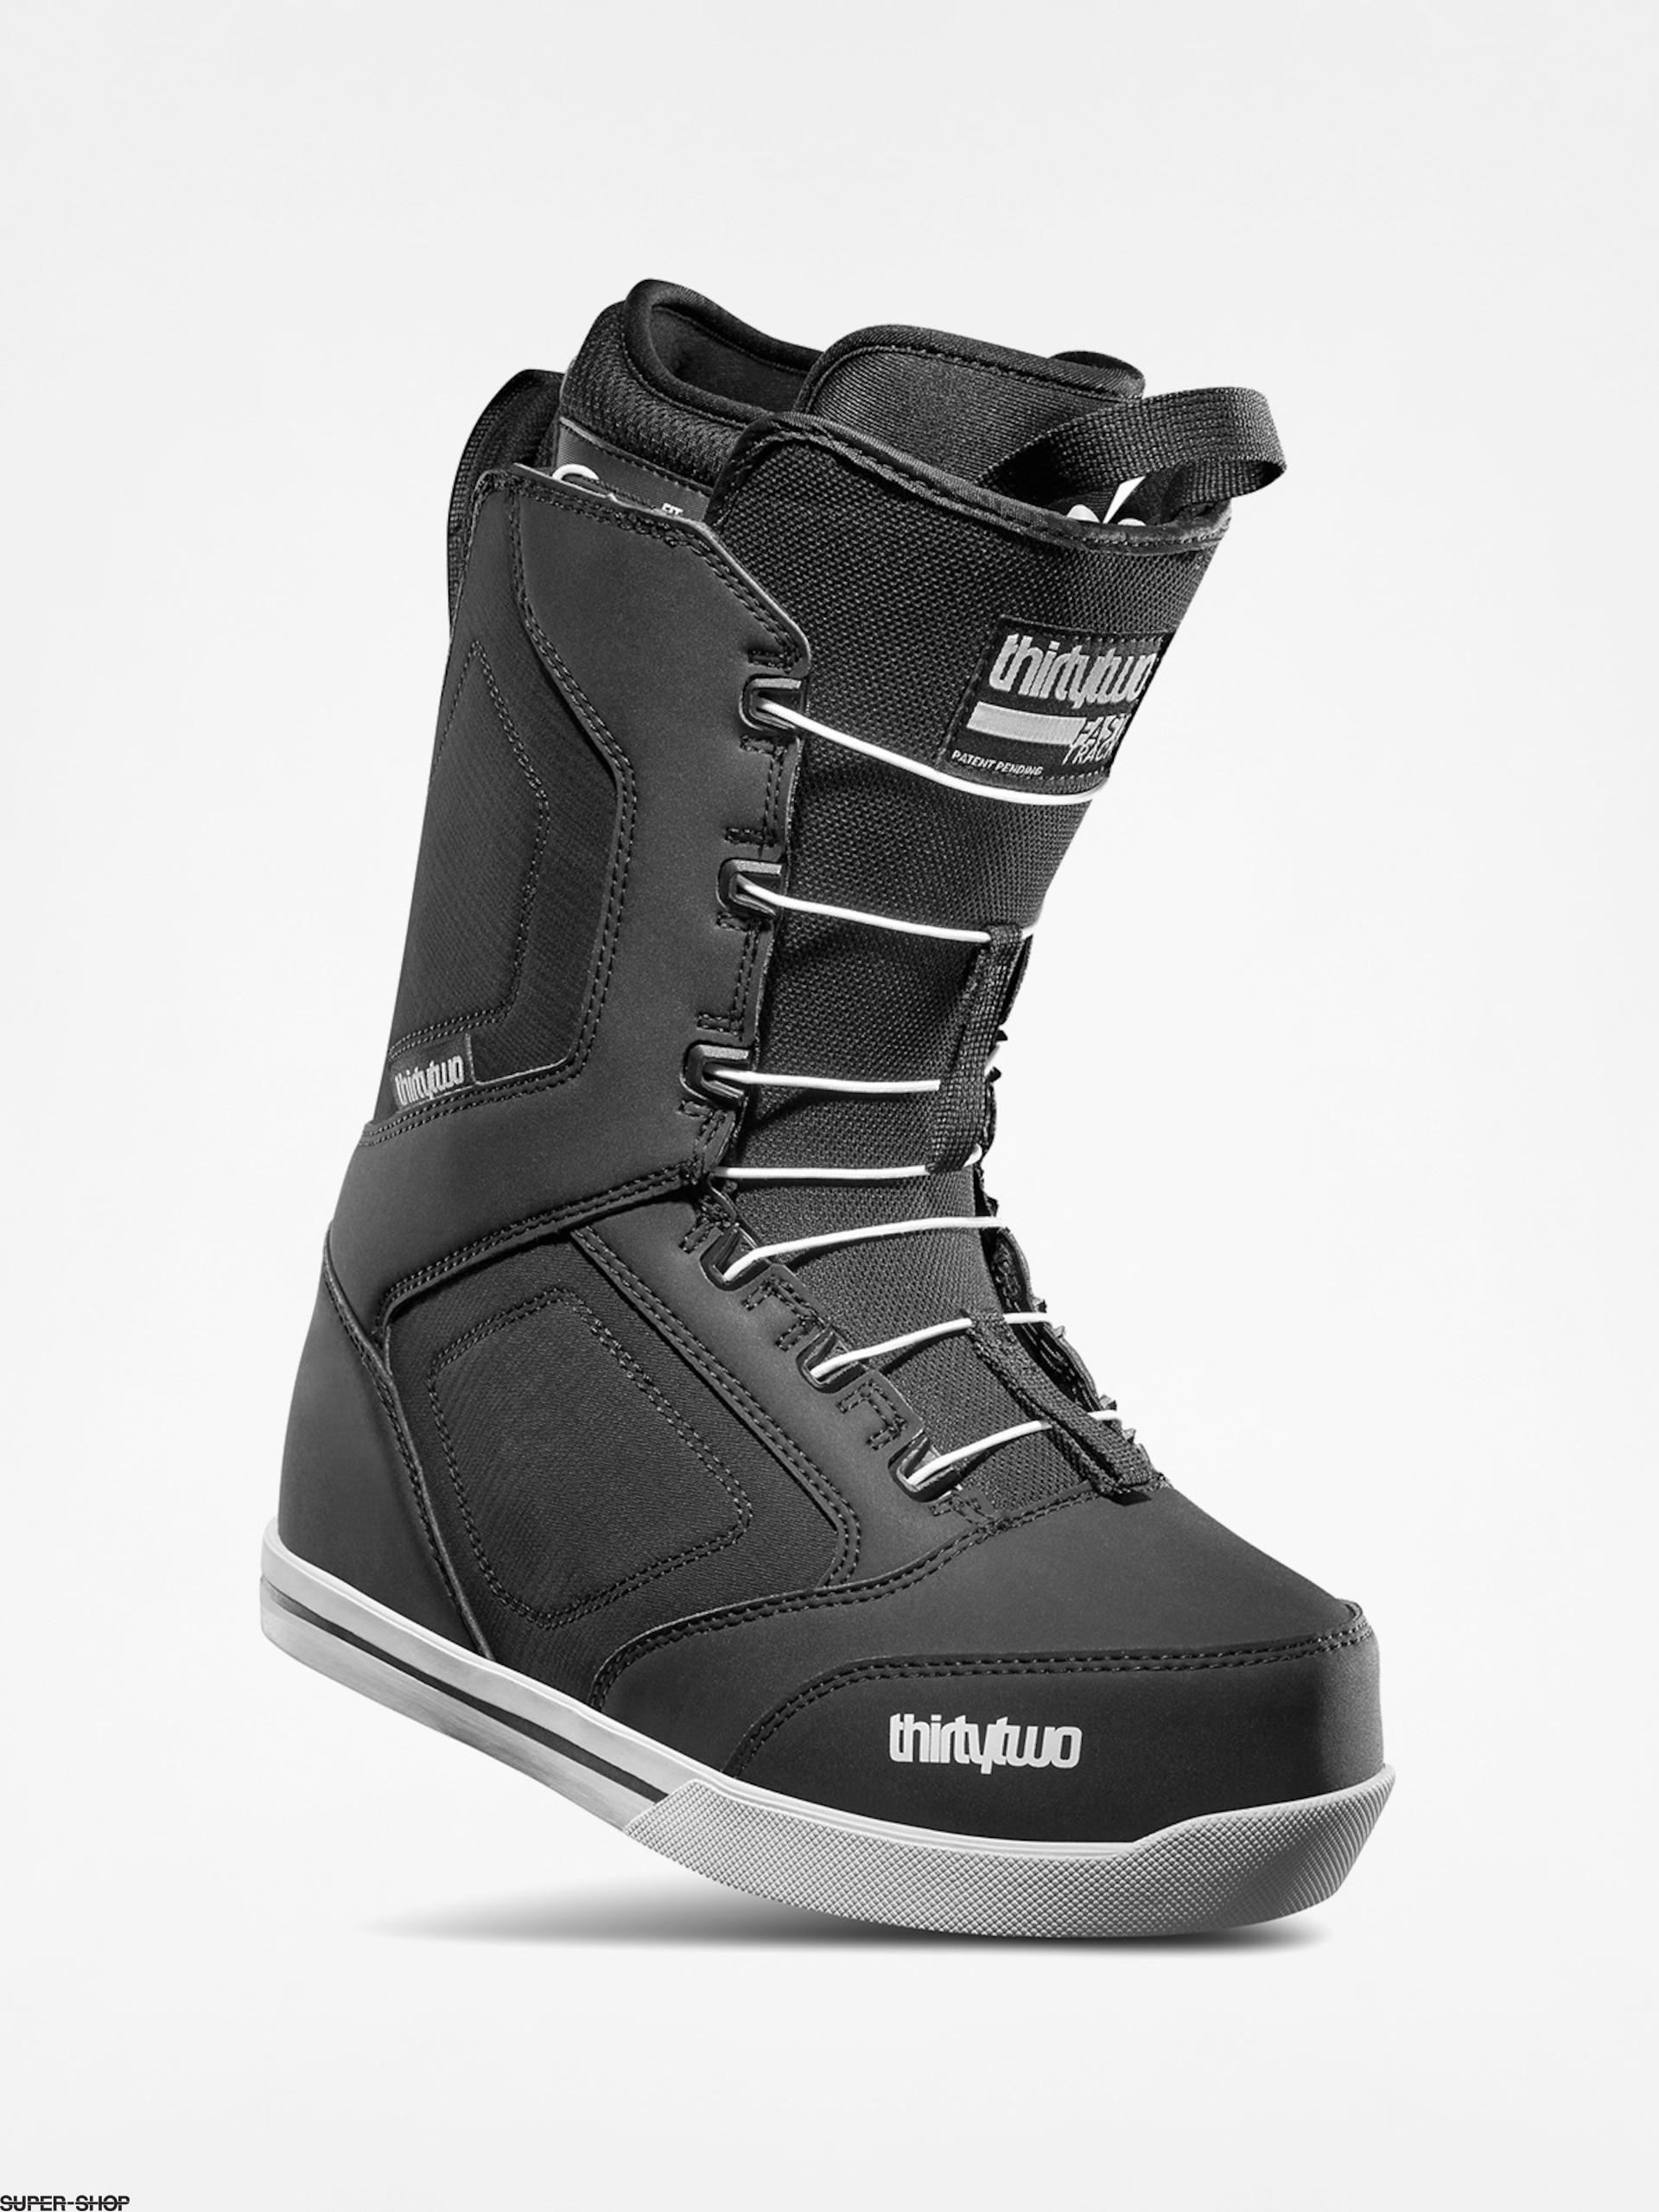 ThirtyTwo Snowboard boots 86 FT (black)